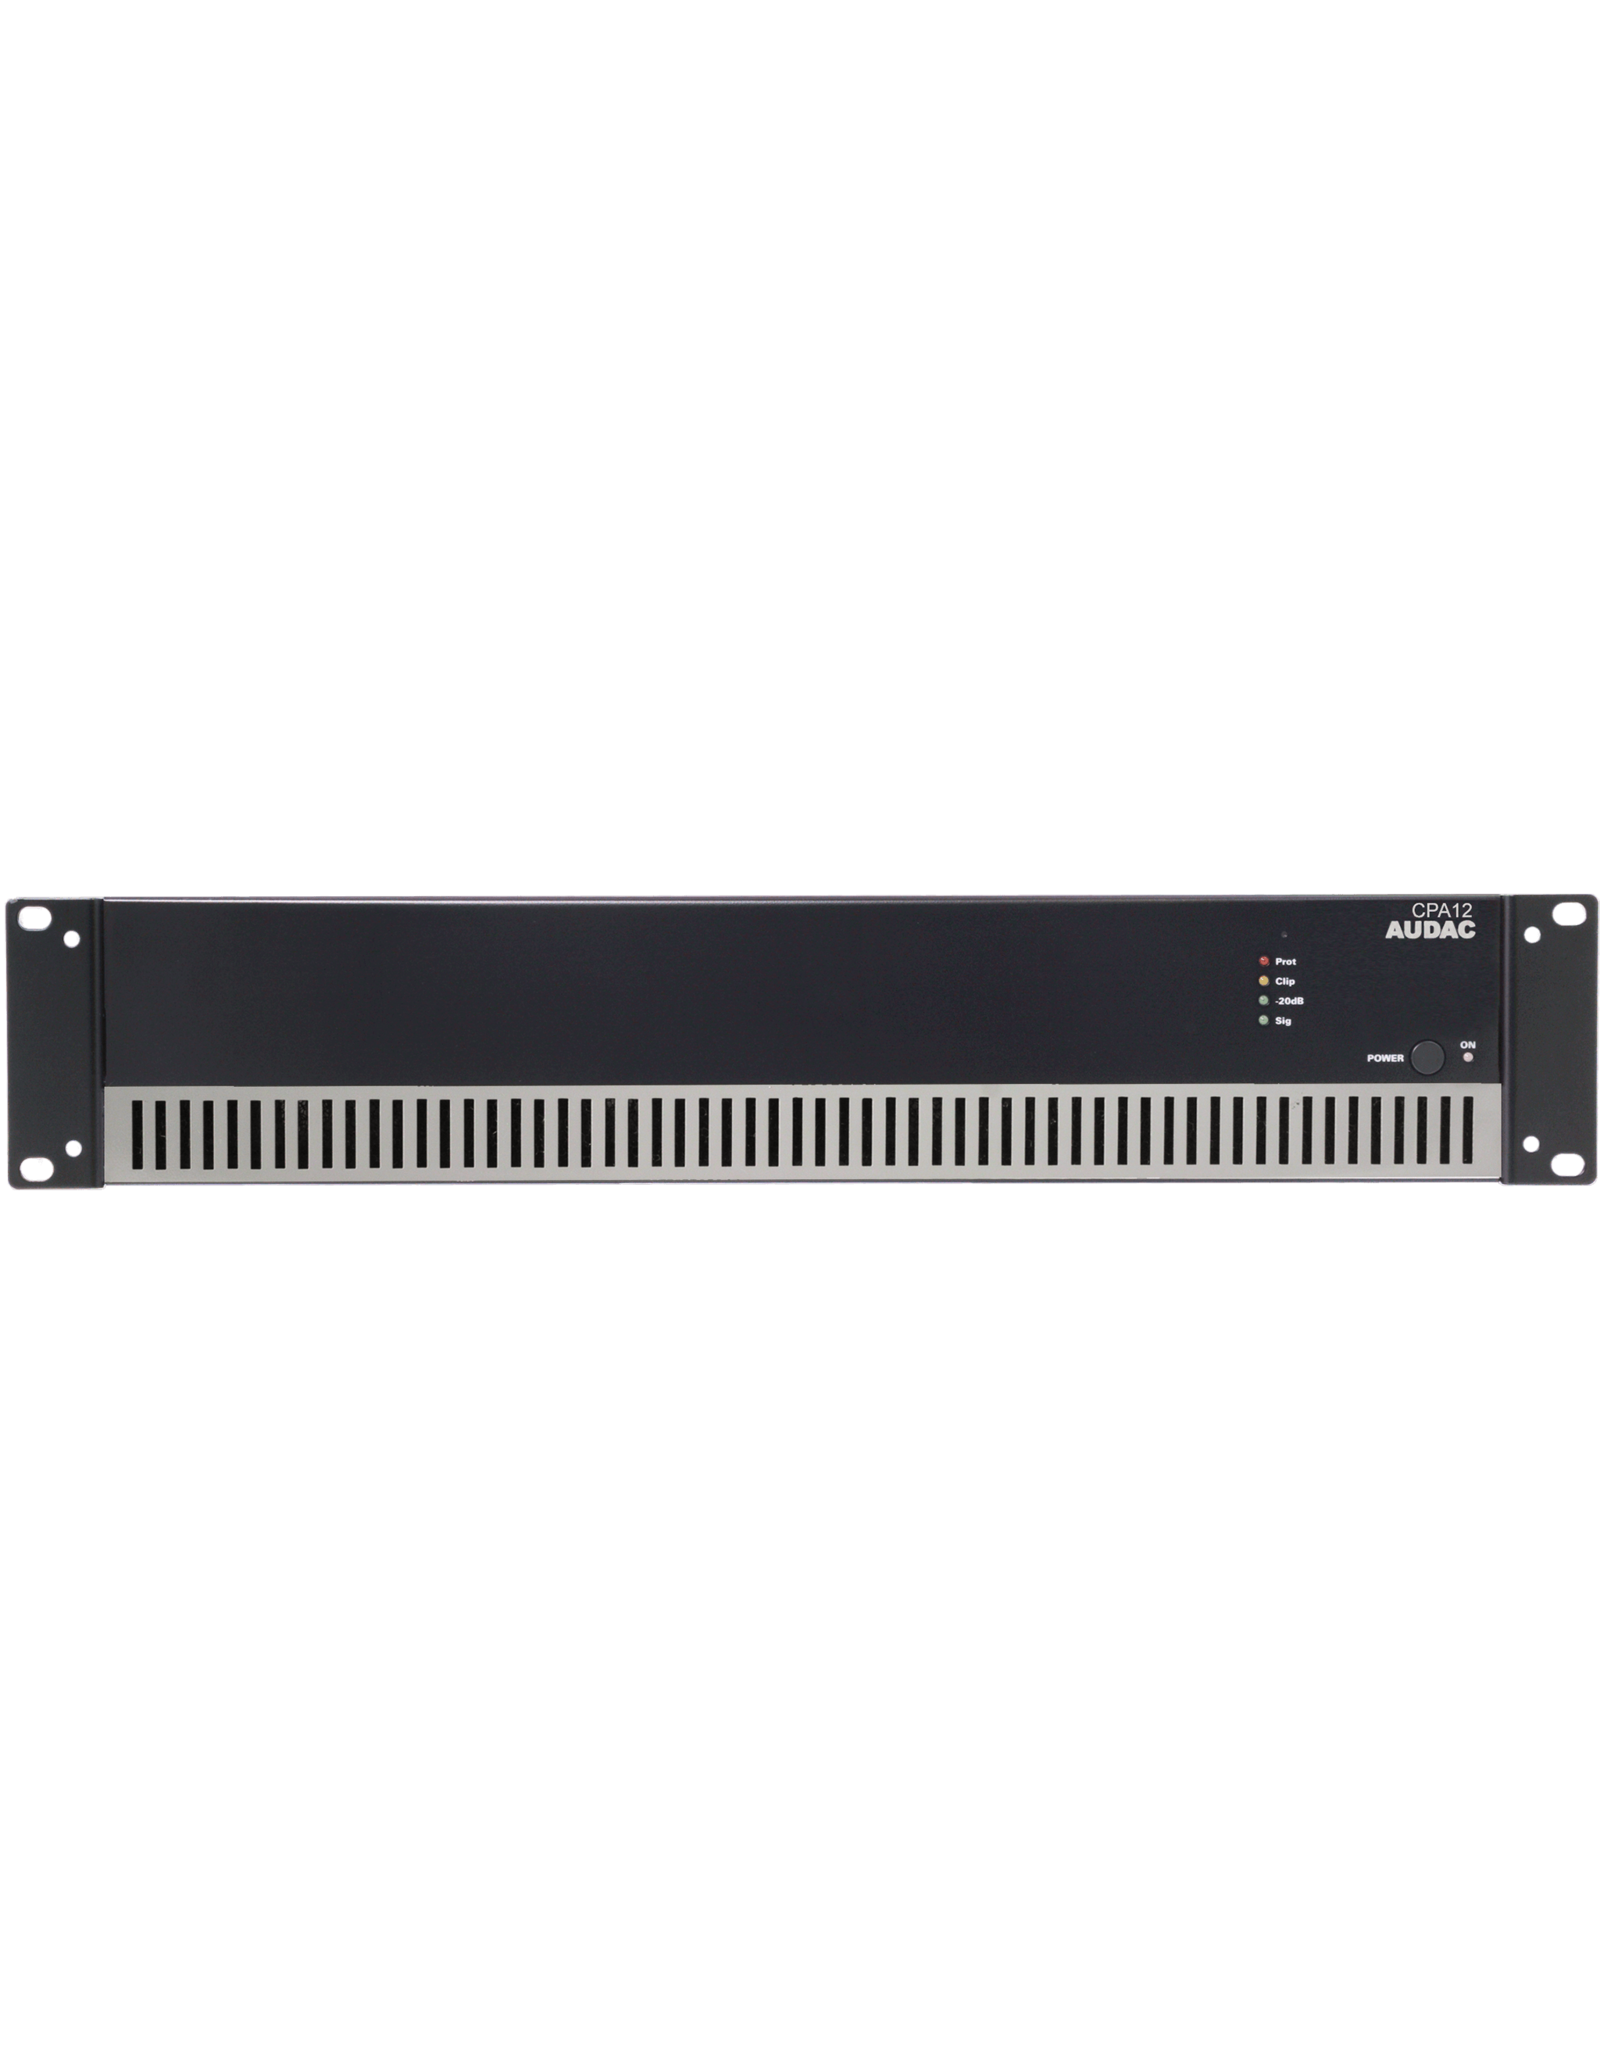 Audac Power amplifier 120W 100V